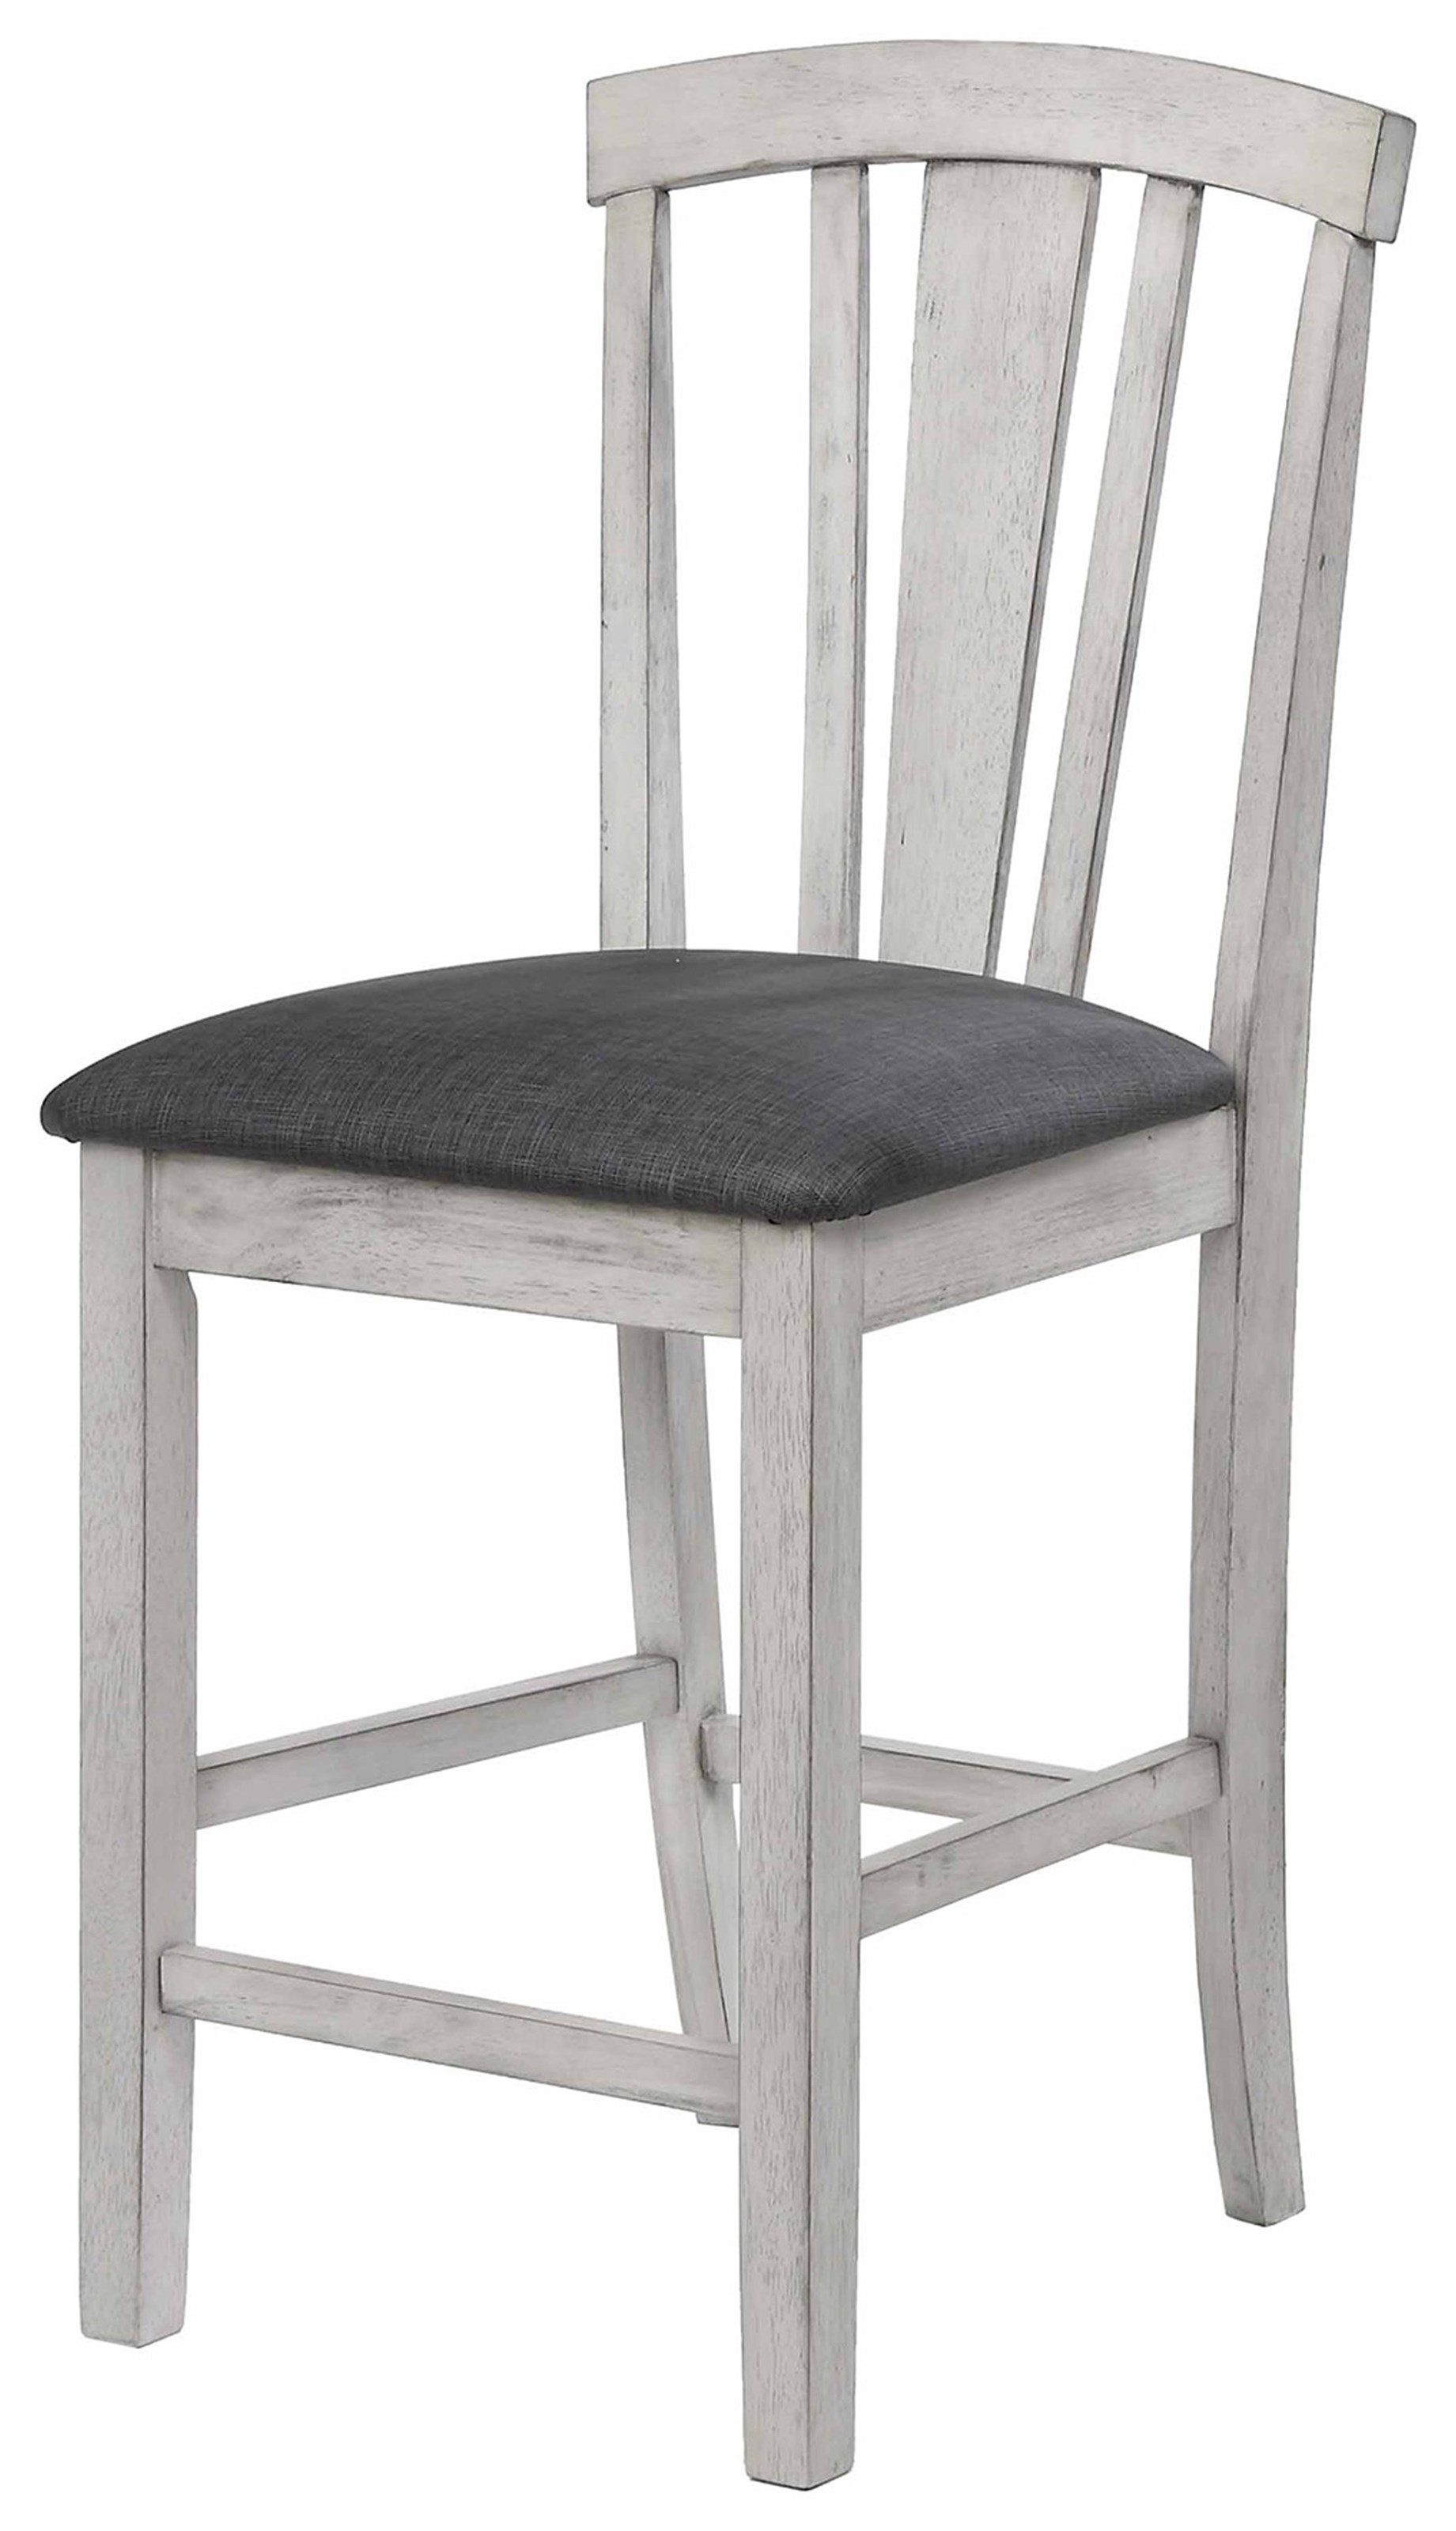 Summer Winds Panel Back Counter Chair by E.C.I. Furniture at Wayside Furniture